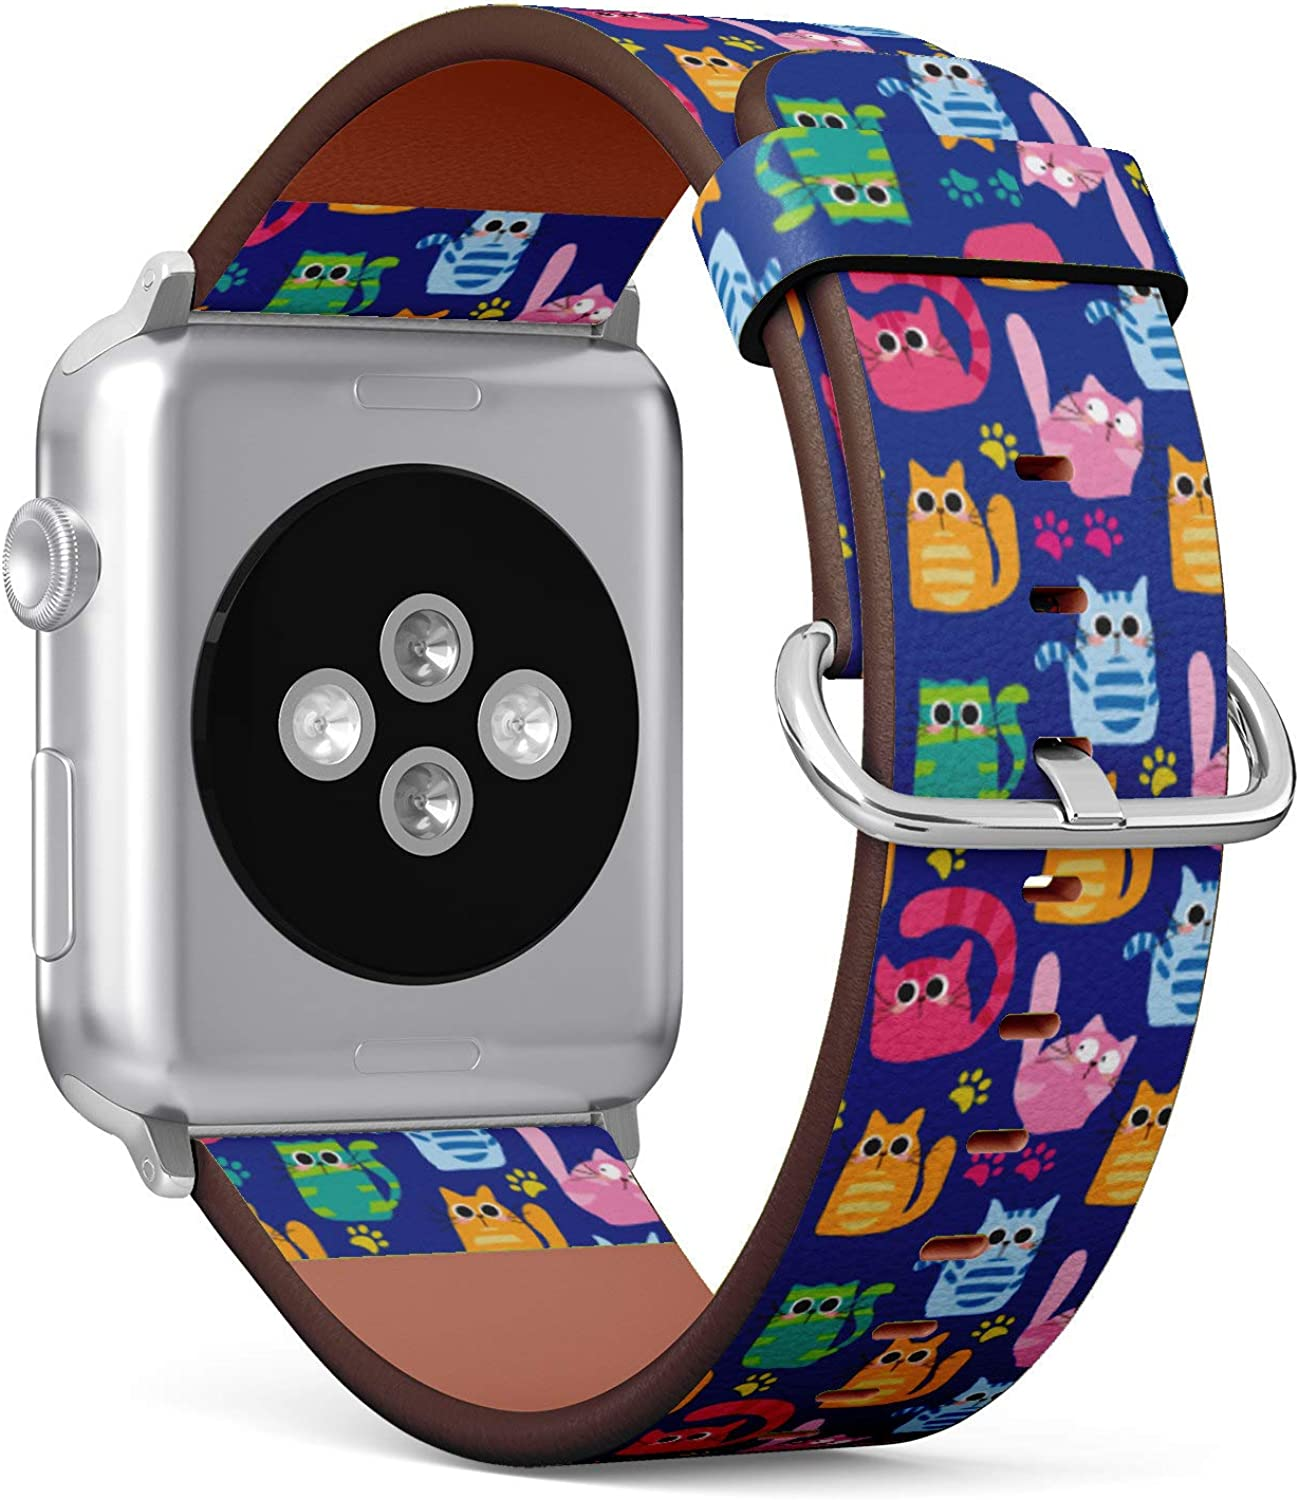 (Cute Cartoon Cat and Paws Pattern) Patterned Leather Wristband Strap for Apple Watch Series 4/3/2/1 gen,Replacement for iWatch 38mm / 40mm Bands